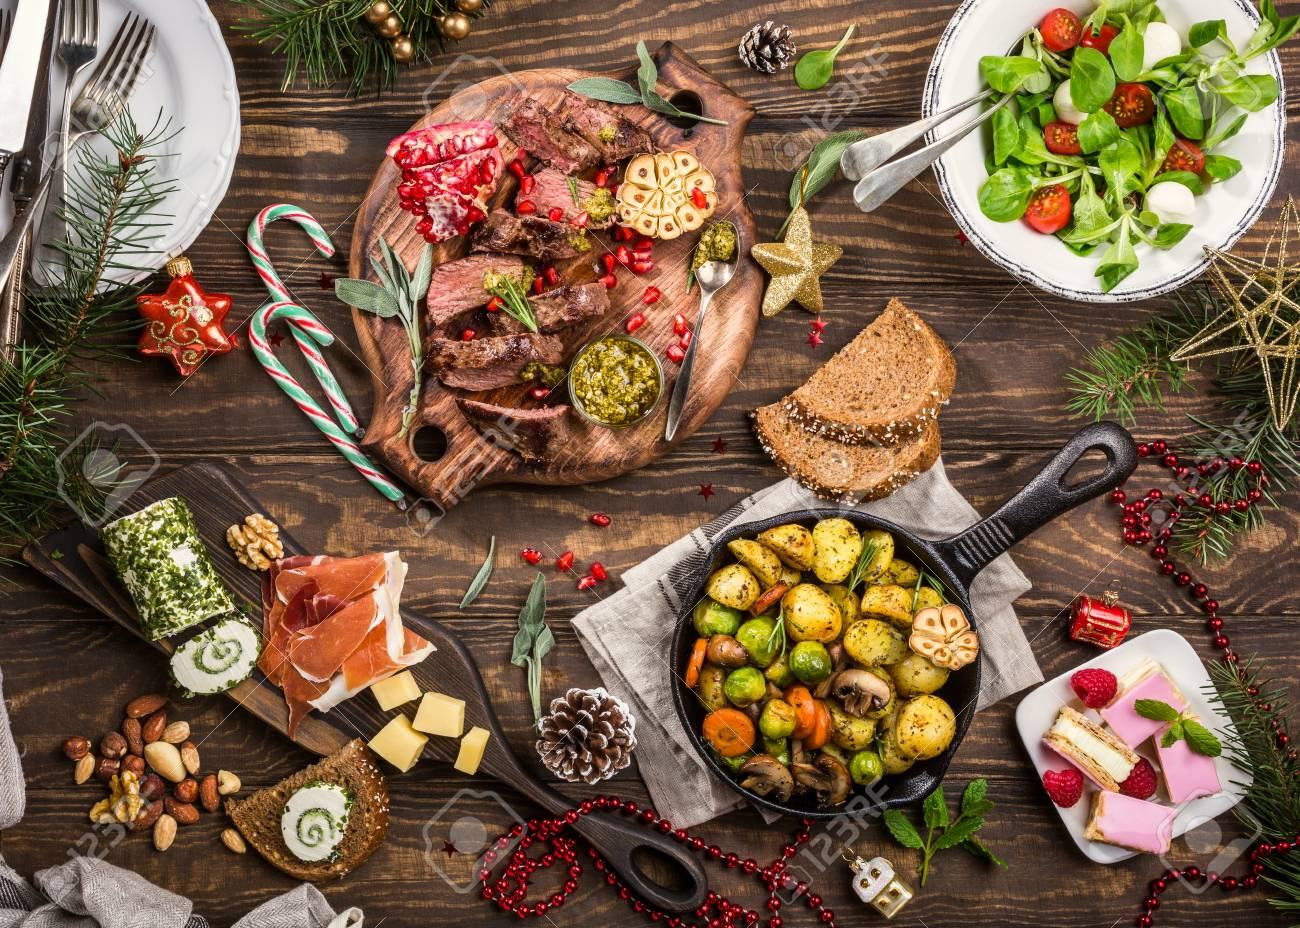 Christmas Meat.Flat Lay Of Delicious Christmas Themed Dinner Table With Roasted